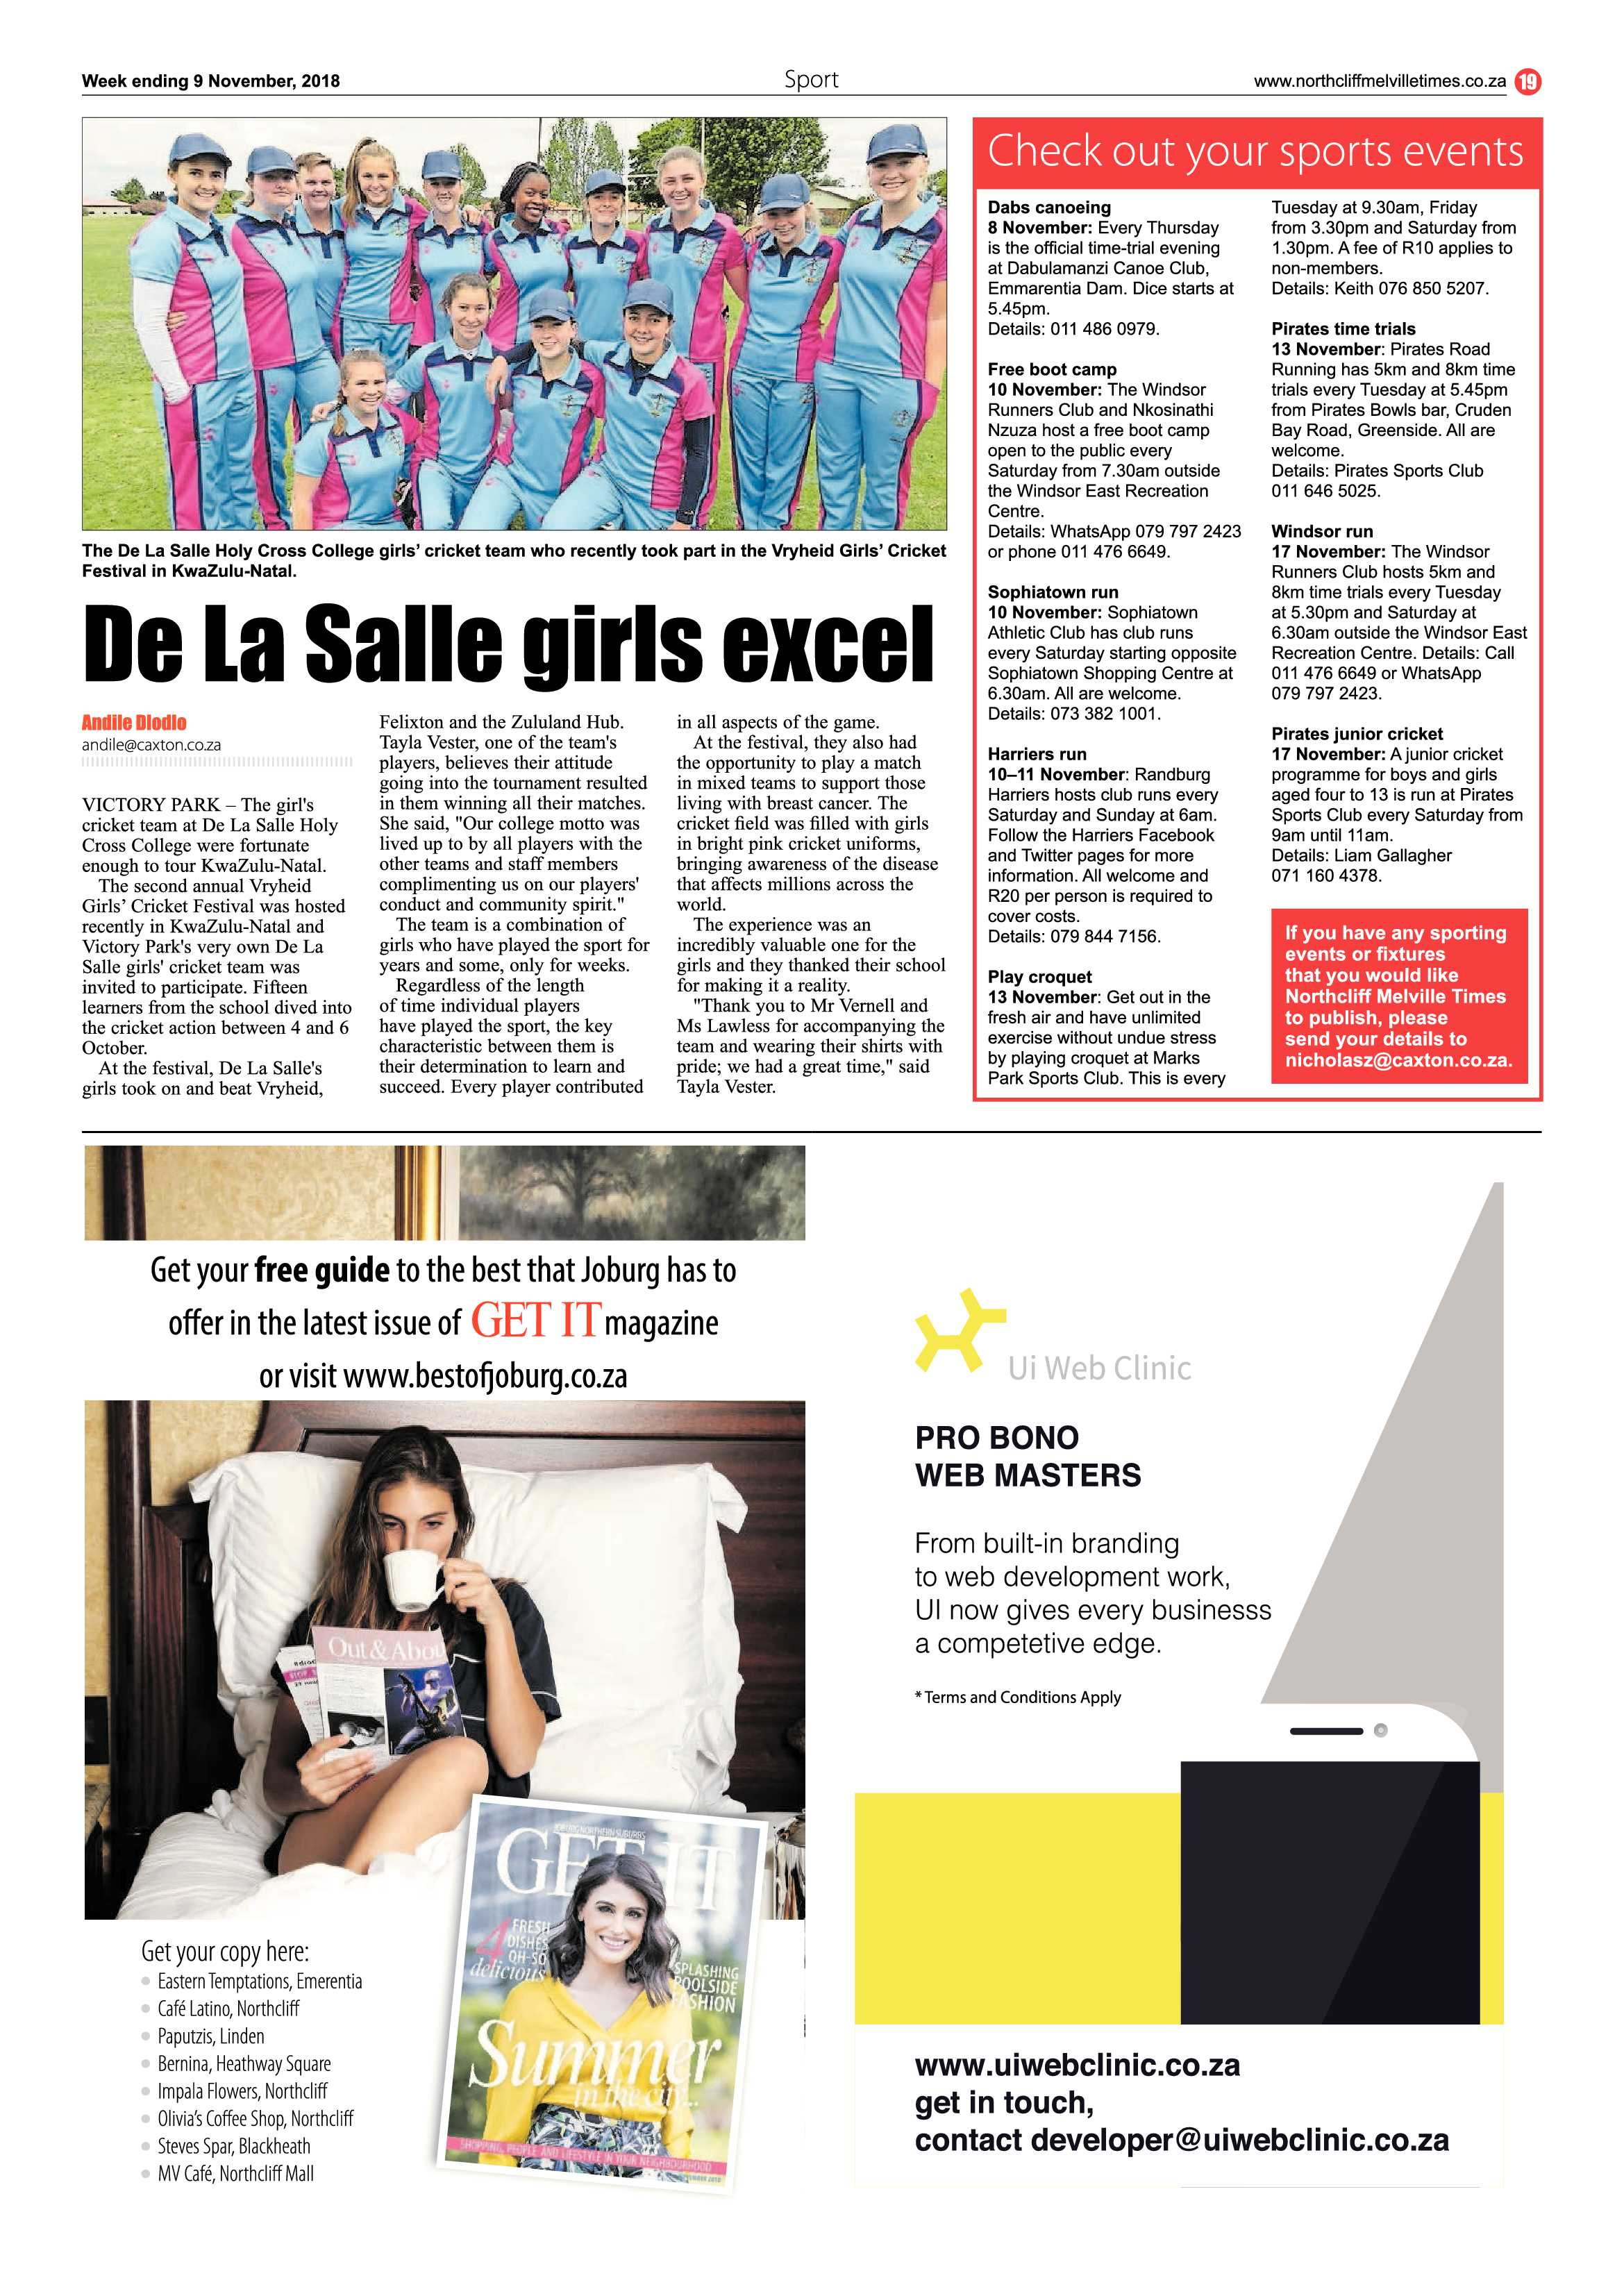 northcliff-melville-times-9-november-2018-epapers-page-19